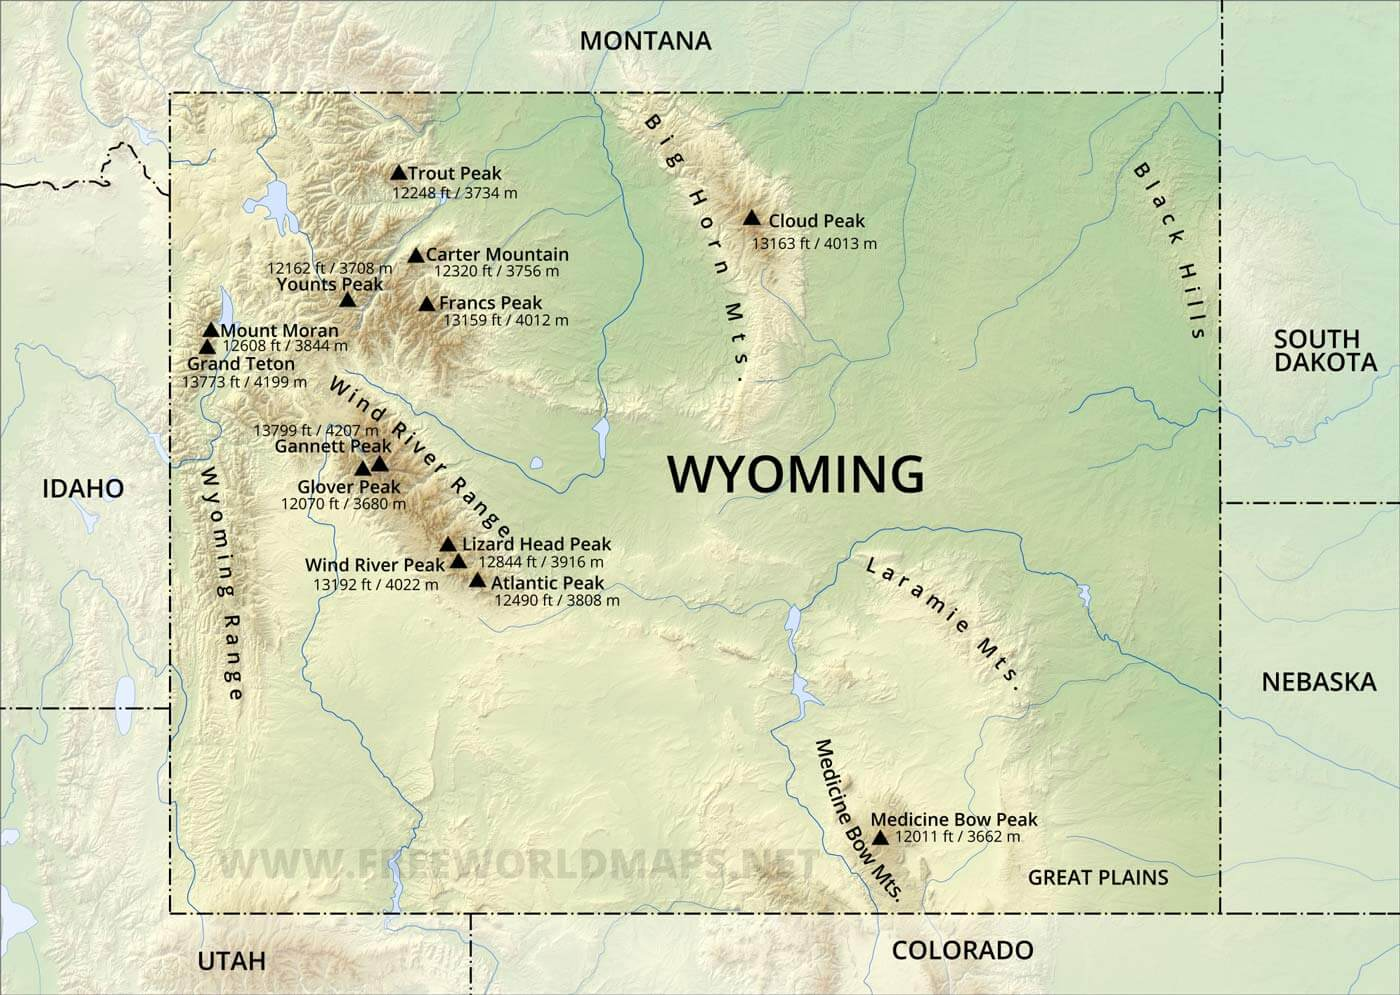 Physical map of Wyoming on il on us map, tn on us map, ky on us map, ak on us map, vermont on us map, mi on us map, ms on us map, mexico on us map, la on us map, ny on us map, nj on us map, quebec on us map, nh on us map, nc on us map, ks on us map, ia on us map, utah on us map, montana on us map, wi on us map, ma on us map,